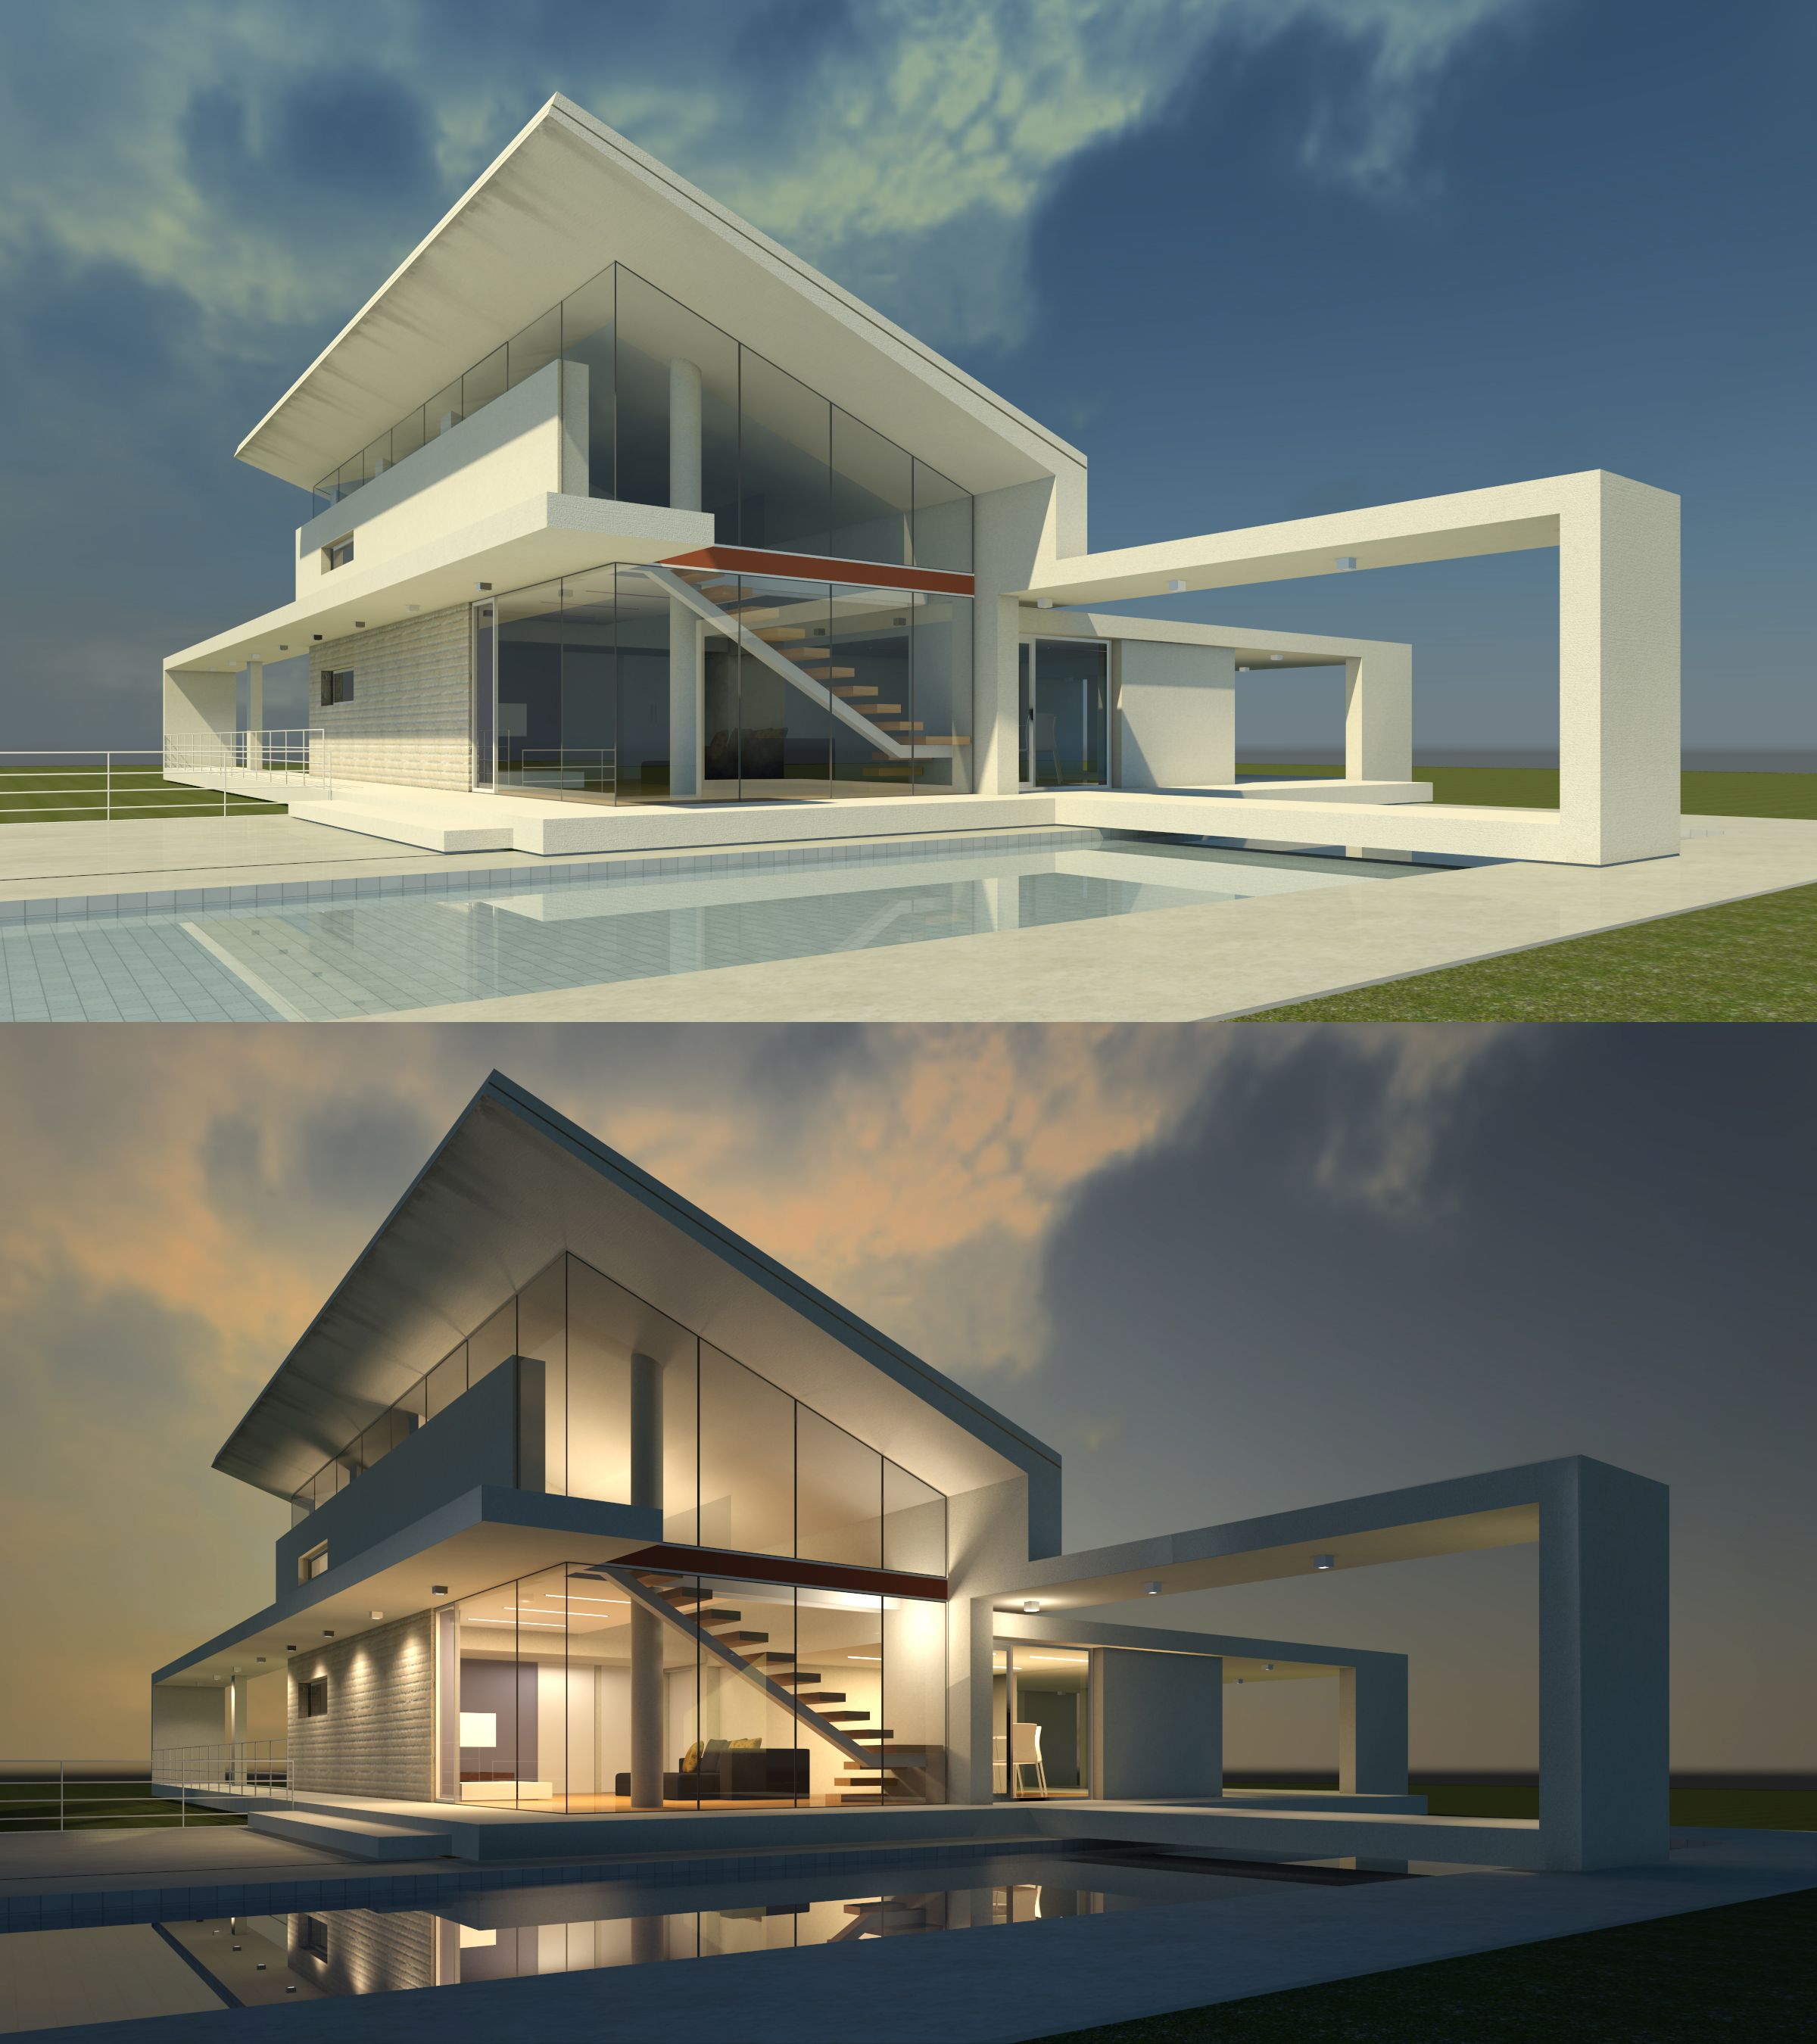 3d max exterior design design day and night 3d max graphic image pinterest exterior - Painting exterior render model ...